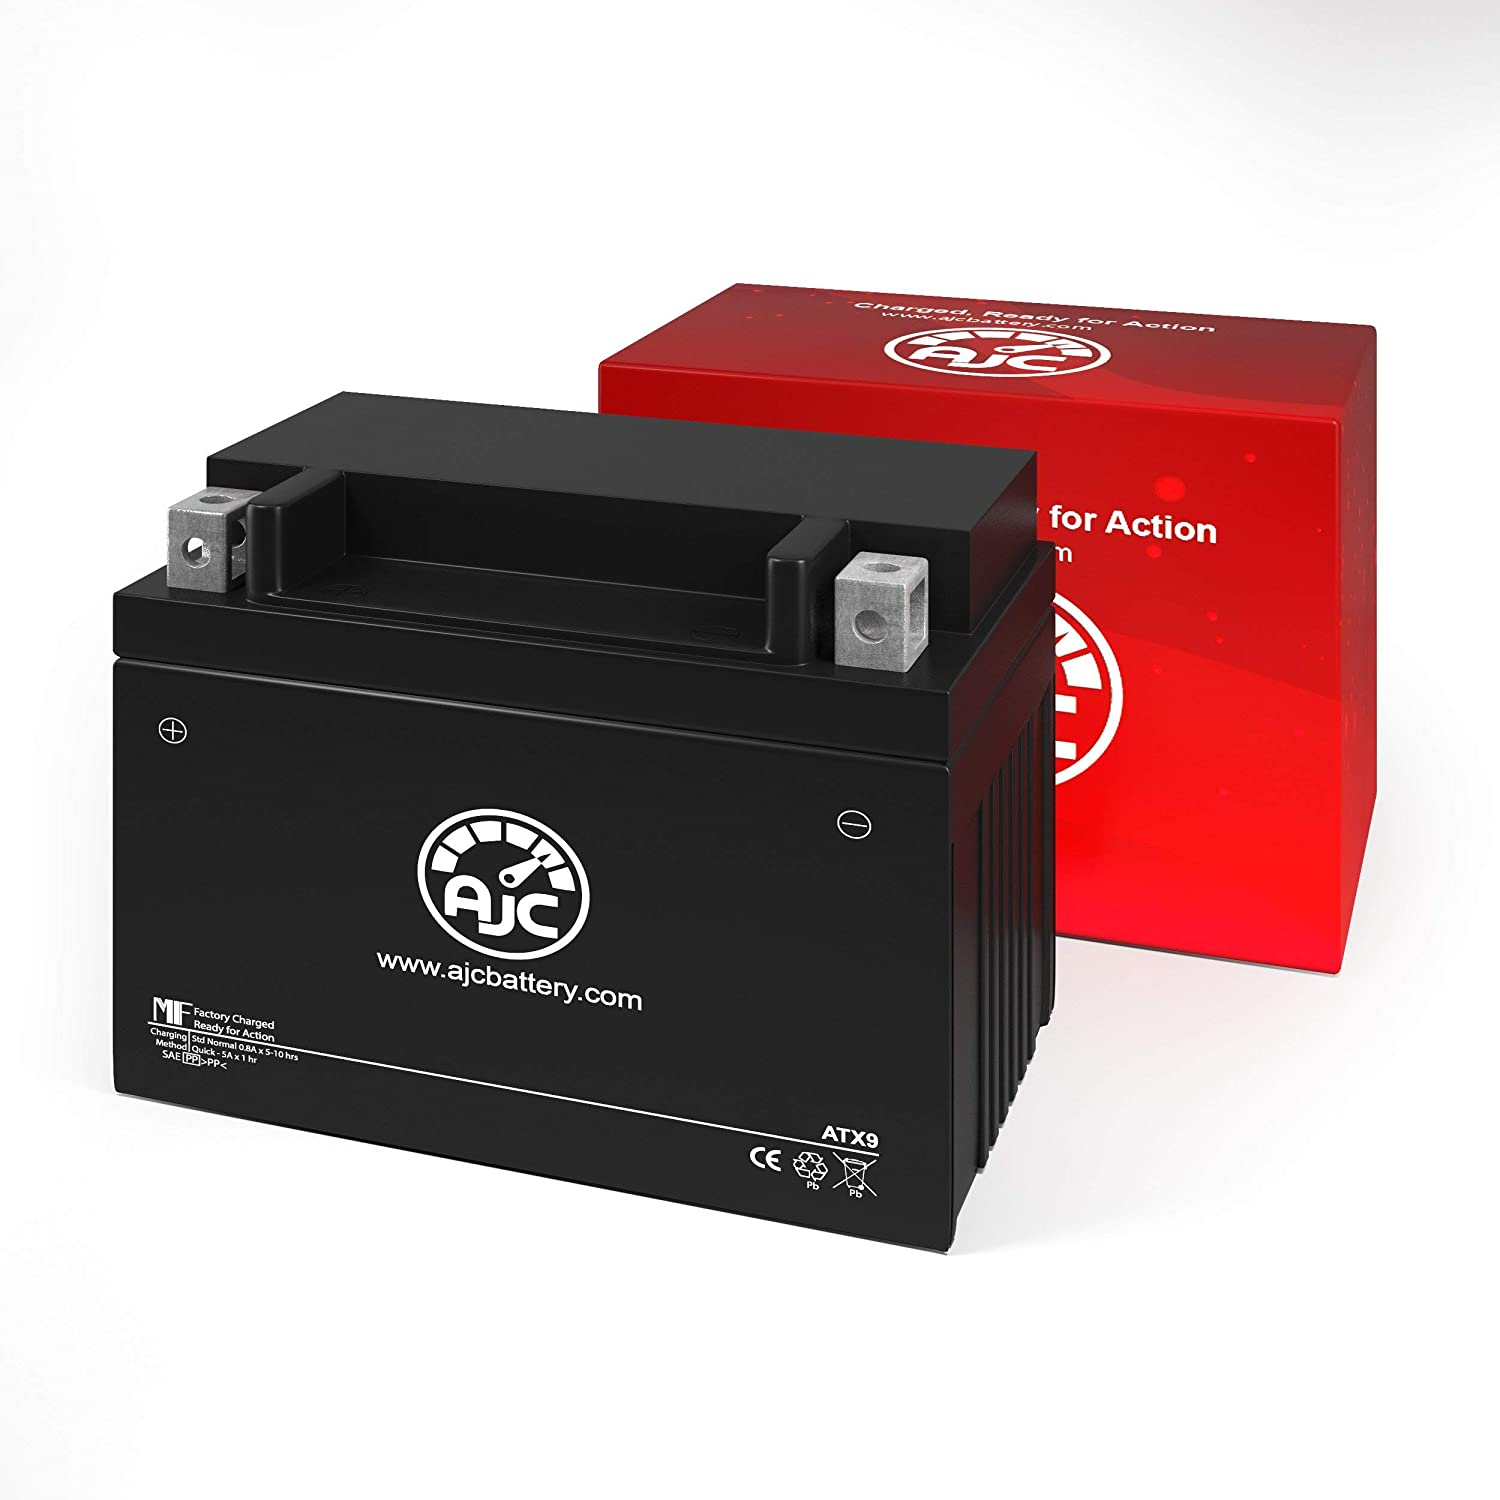 Adventure Power UTX9 Powersports Replacement Battery This is an AJC Brand Replacement